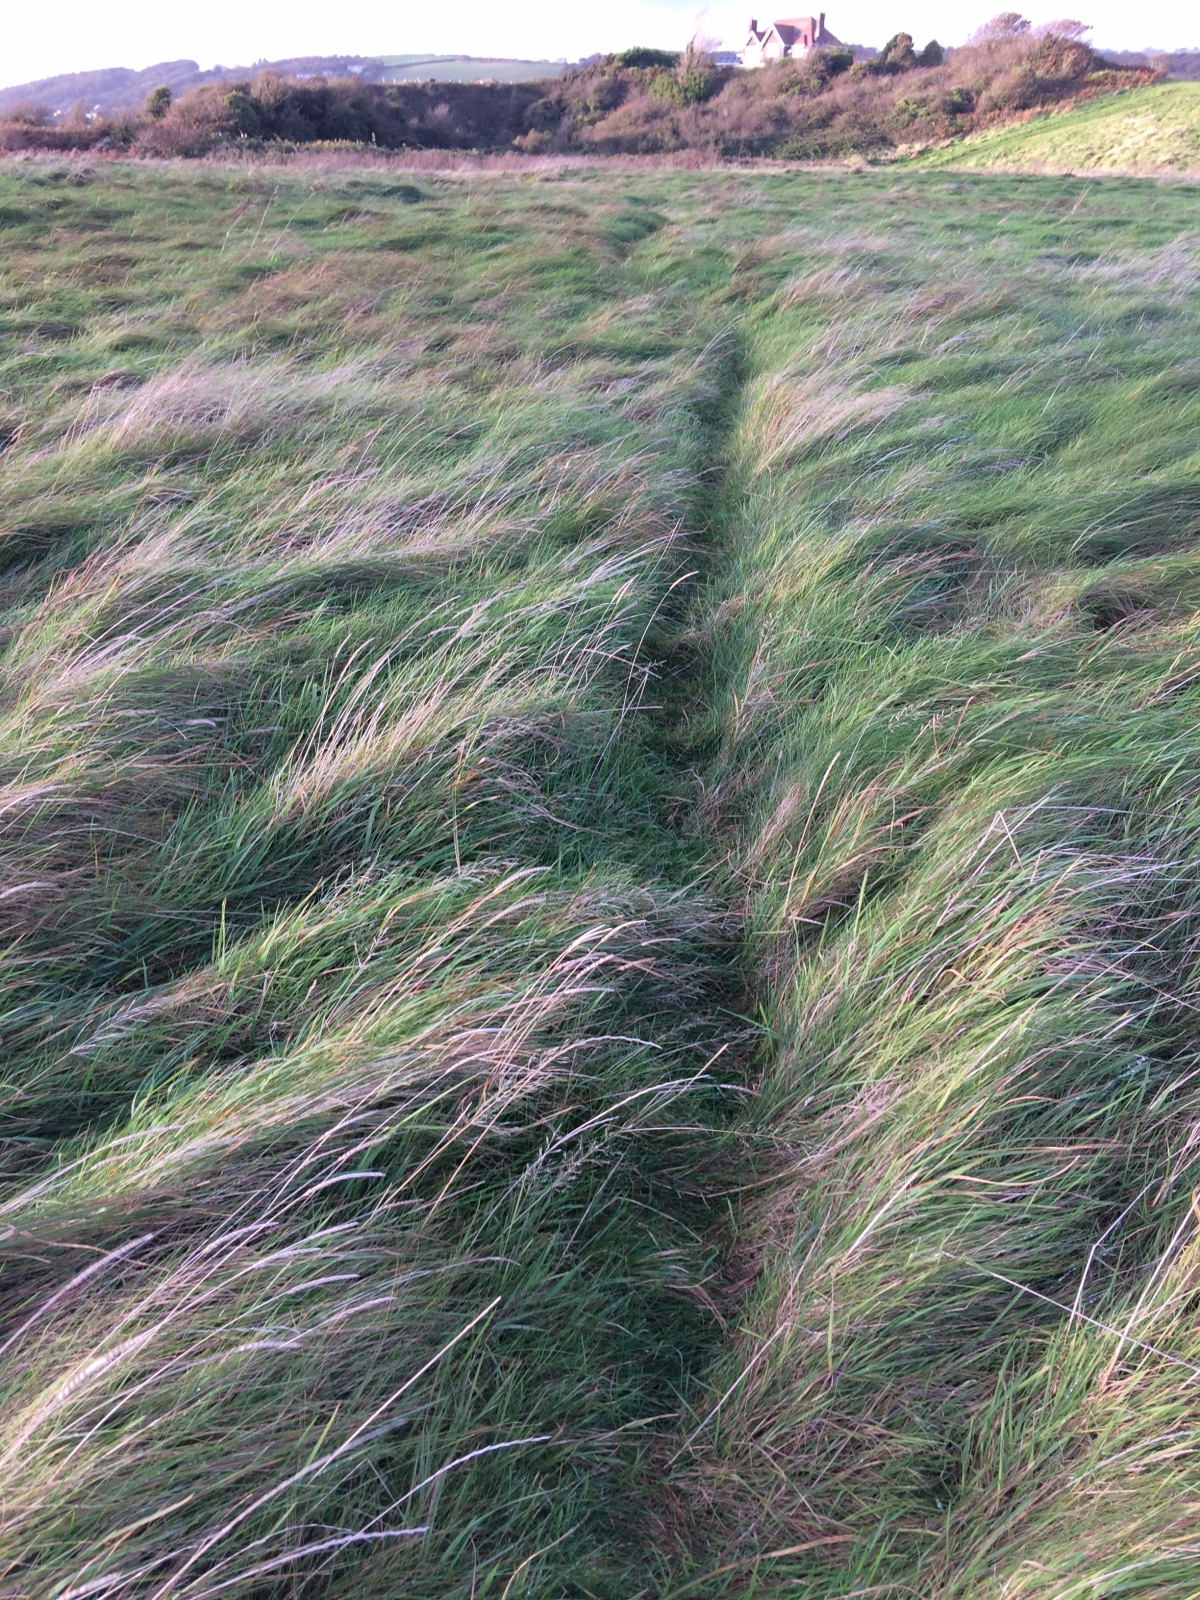 …grass project